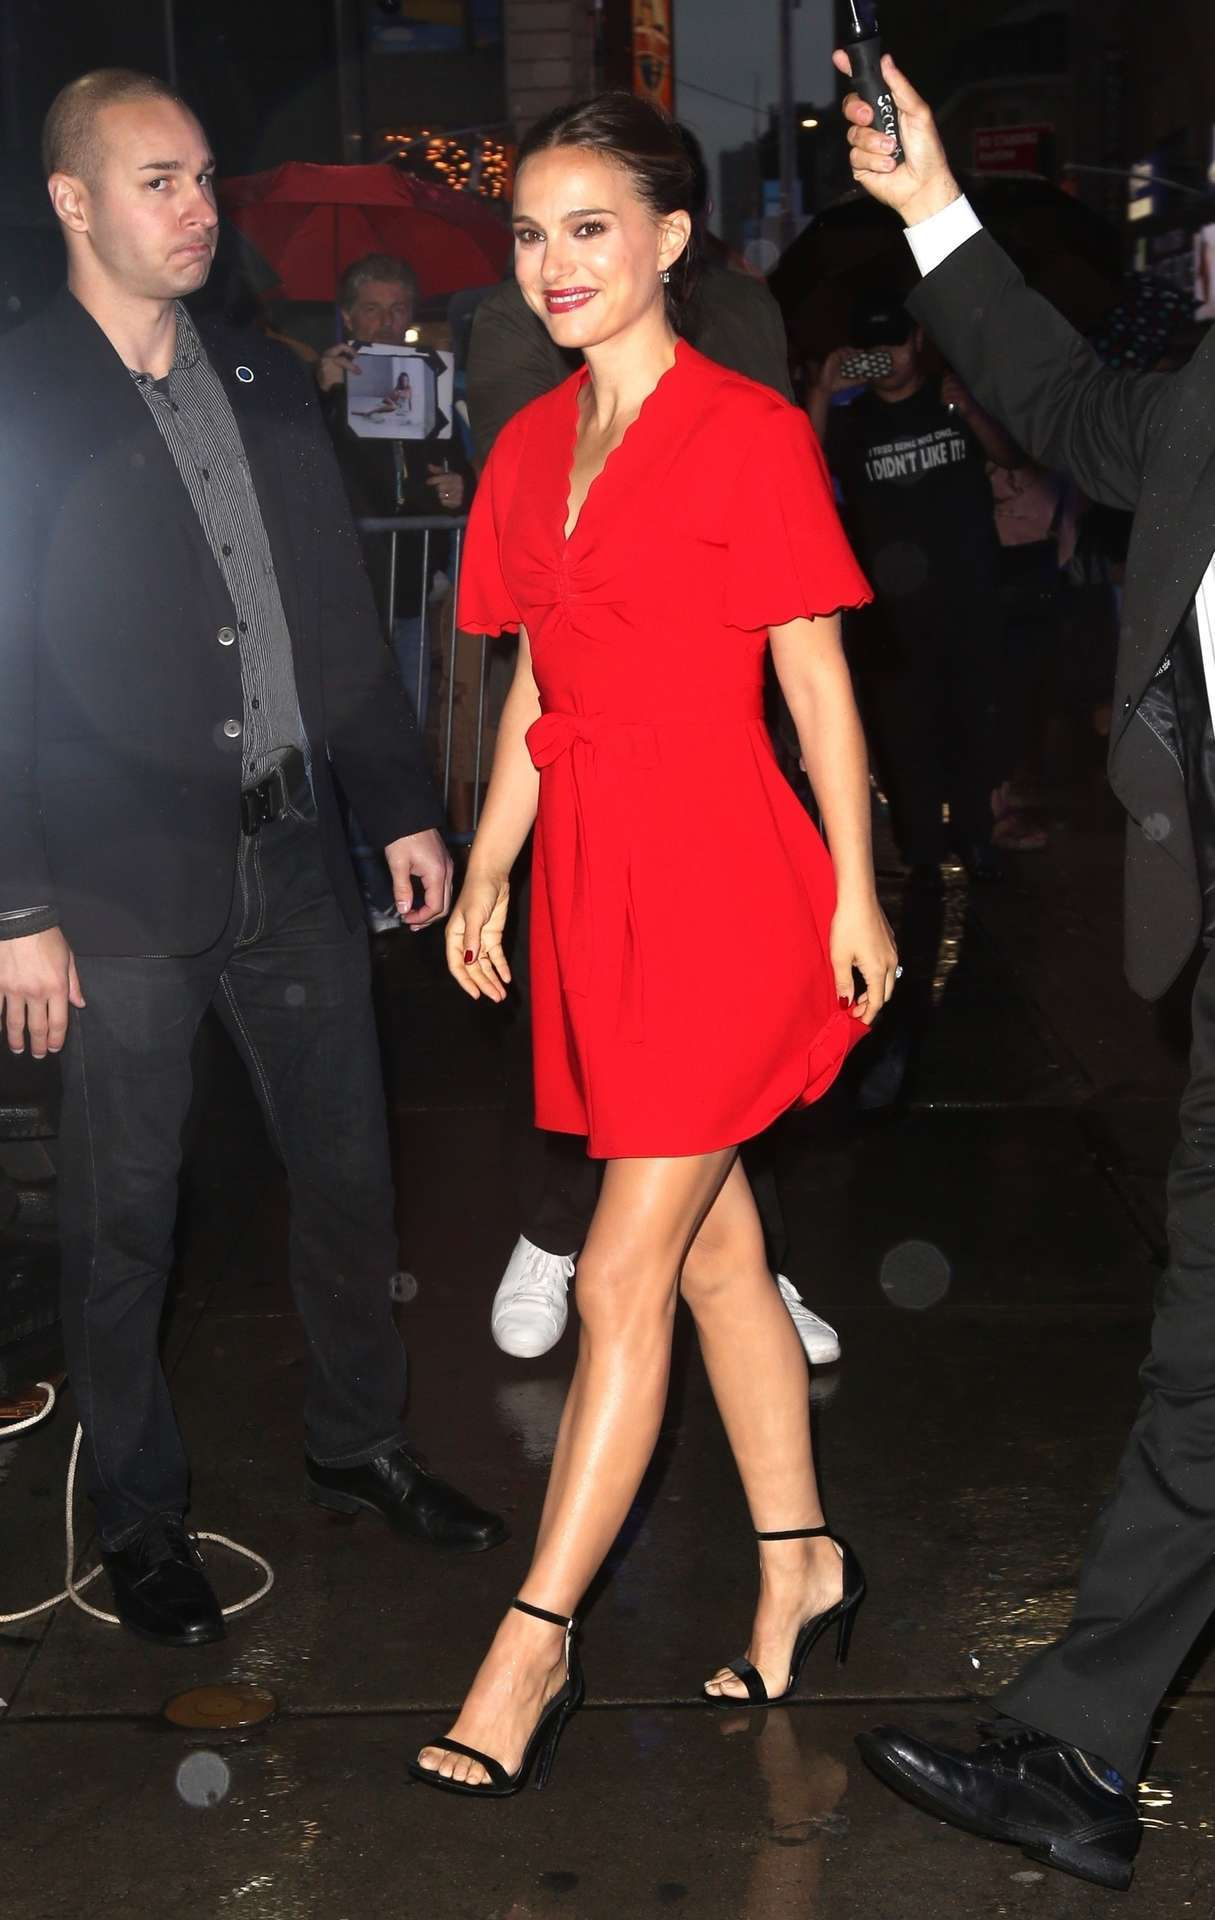 Natalie Portman Outside 'Good Morning America' in NYC